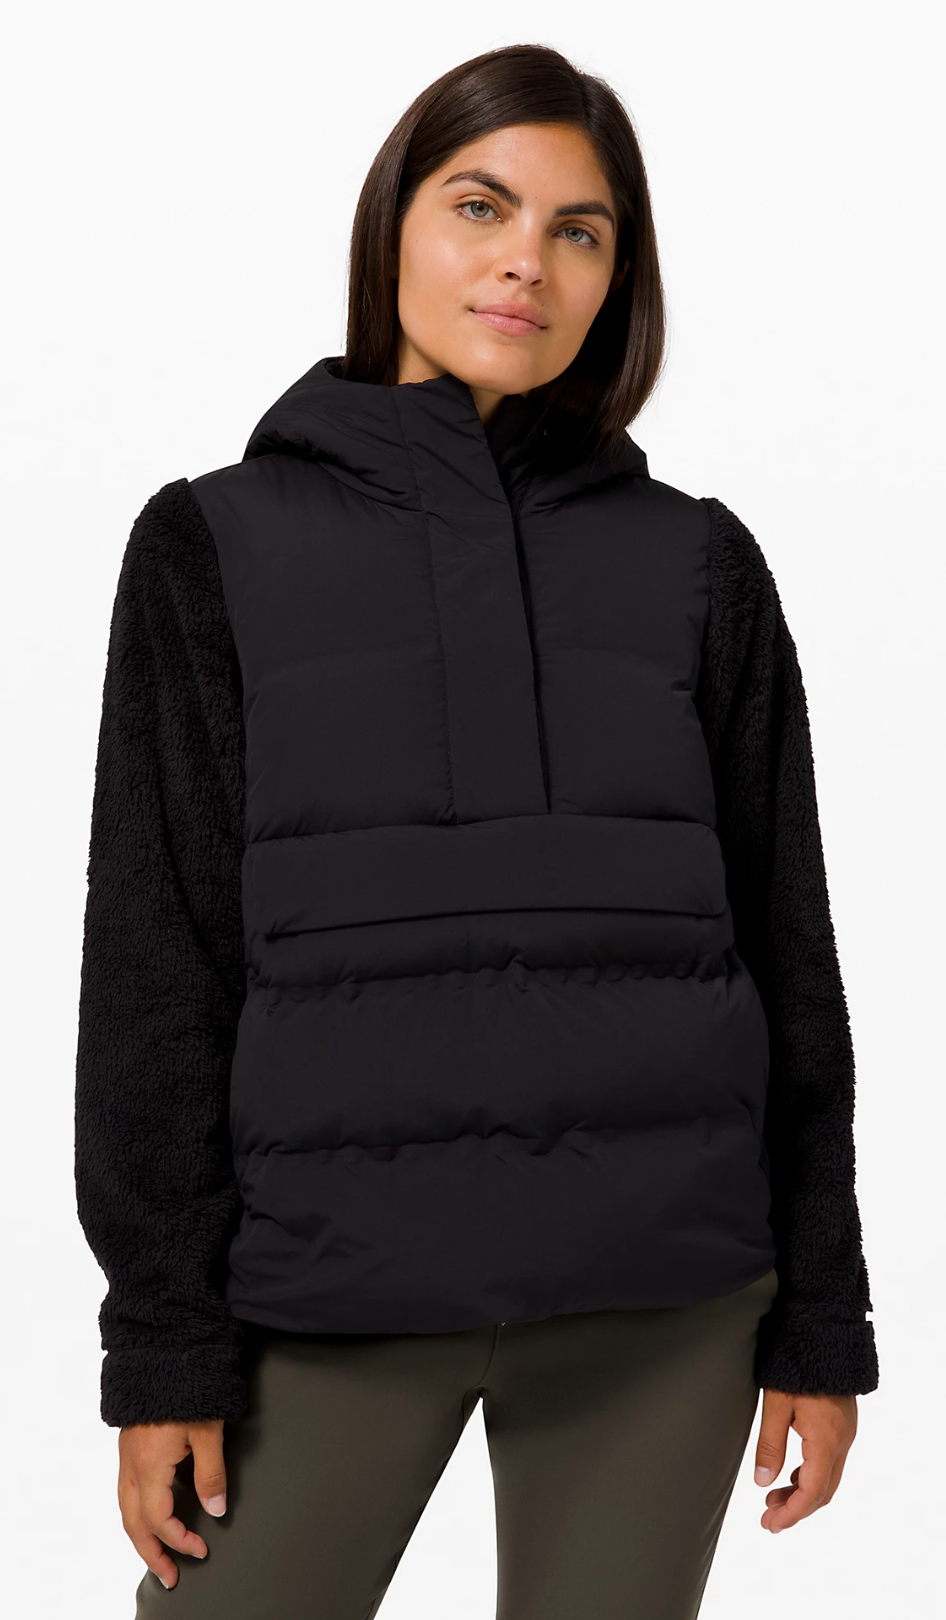 Cozy Climate Pullover in Black (Photo via Lululemon Athletica)